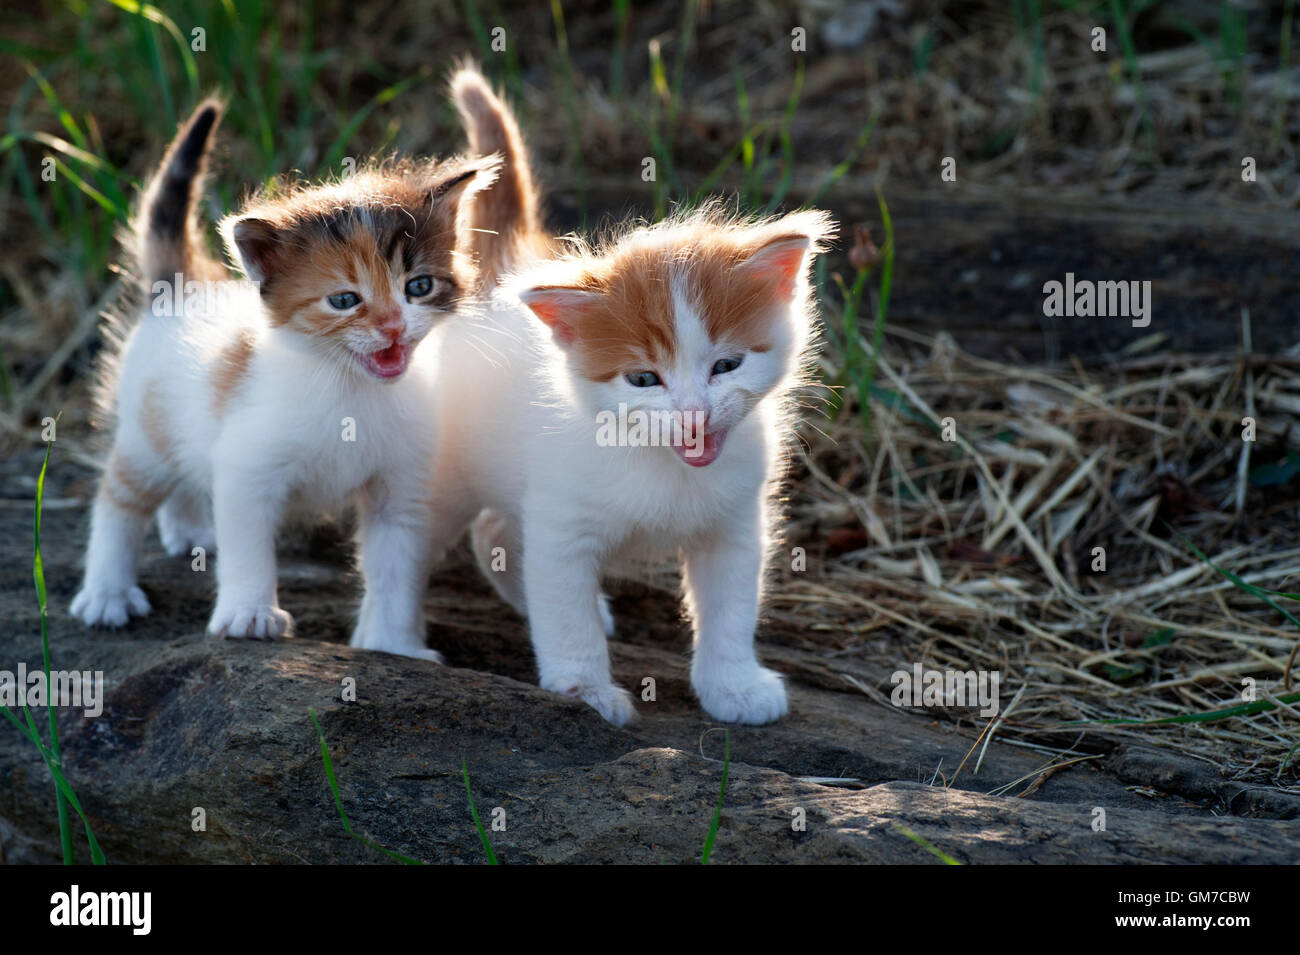 Two four weeks old crying kittens outdoors - Stock Image